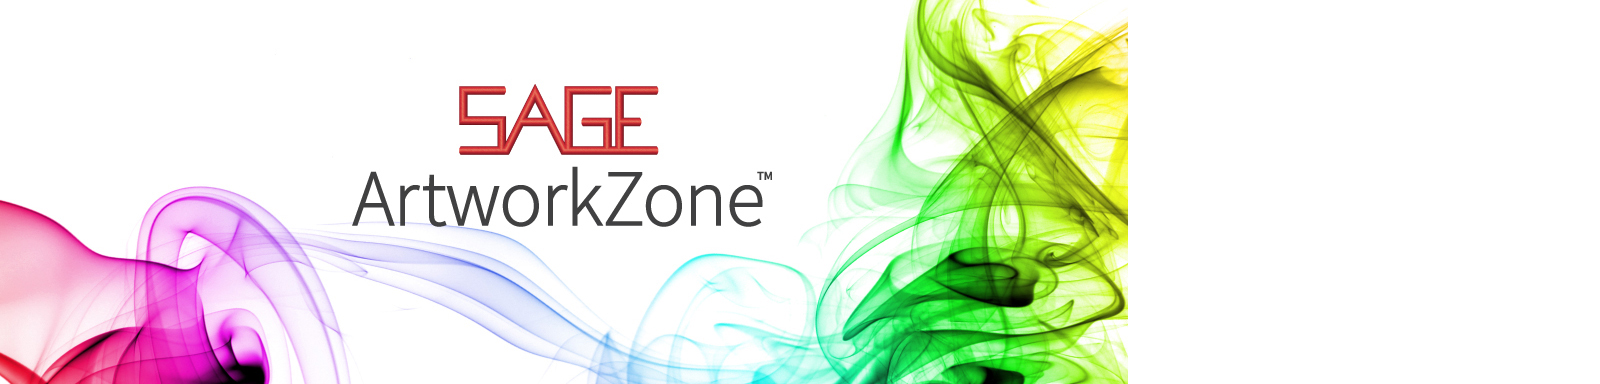 SAGE ArtworkZone